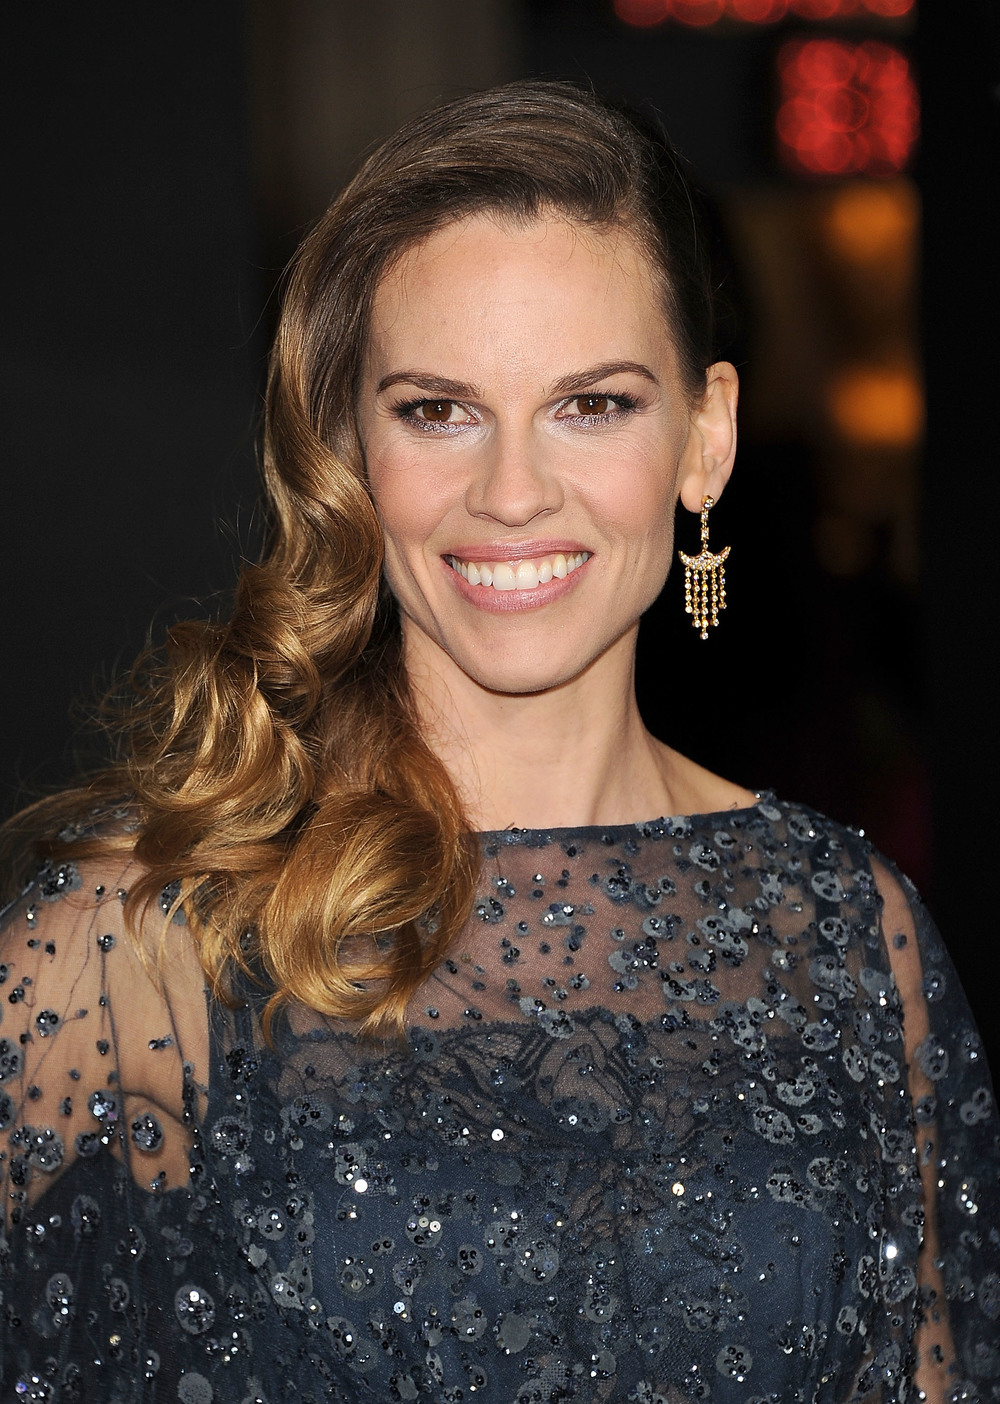 MB_HILARY SWANK_NEW YEARS EVE PREMIERE_12_5_11.5.jpeg